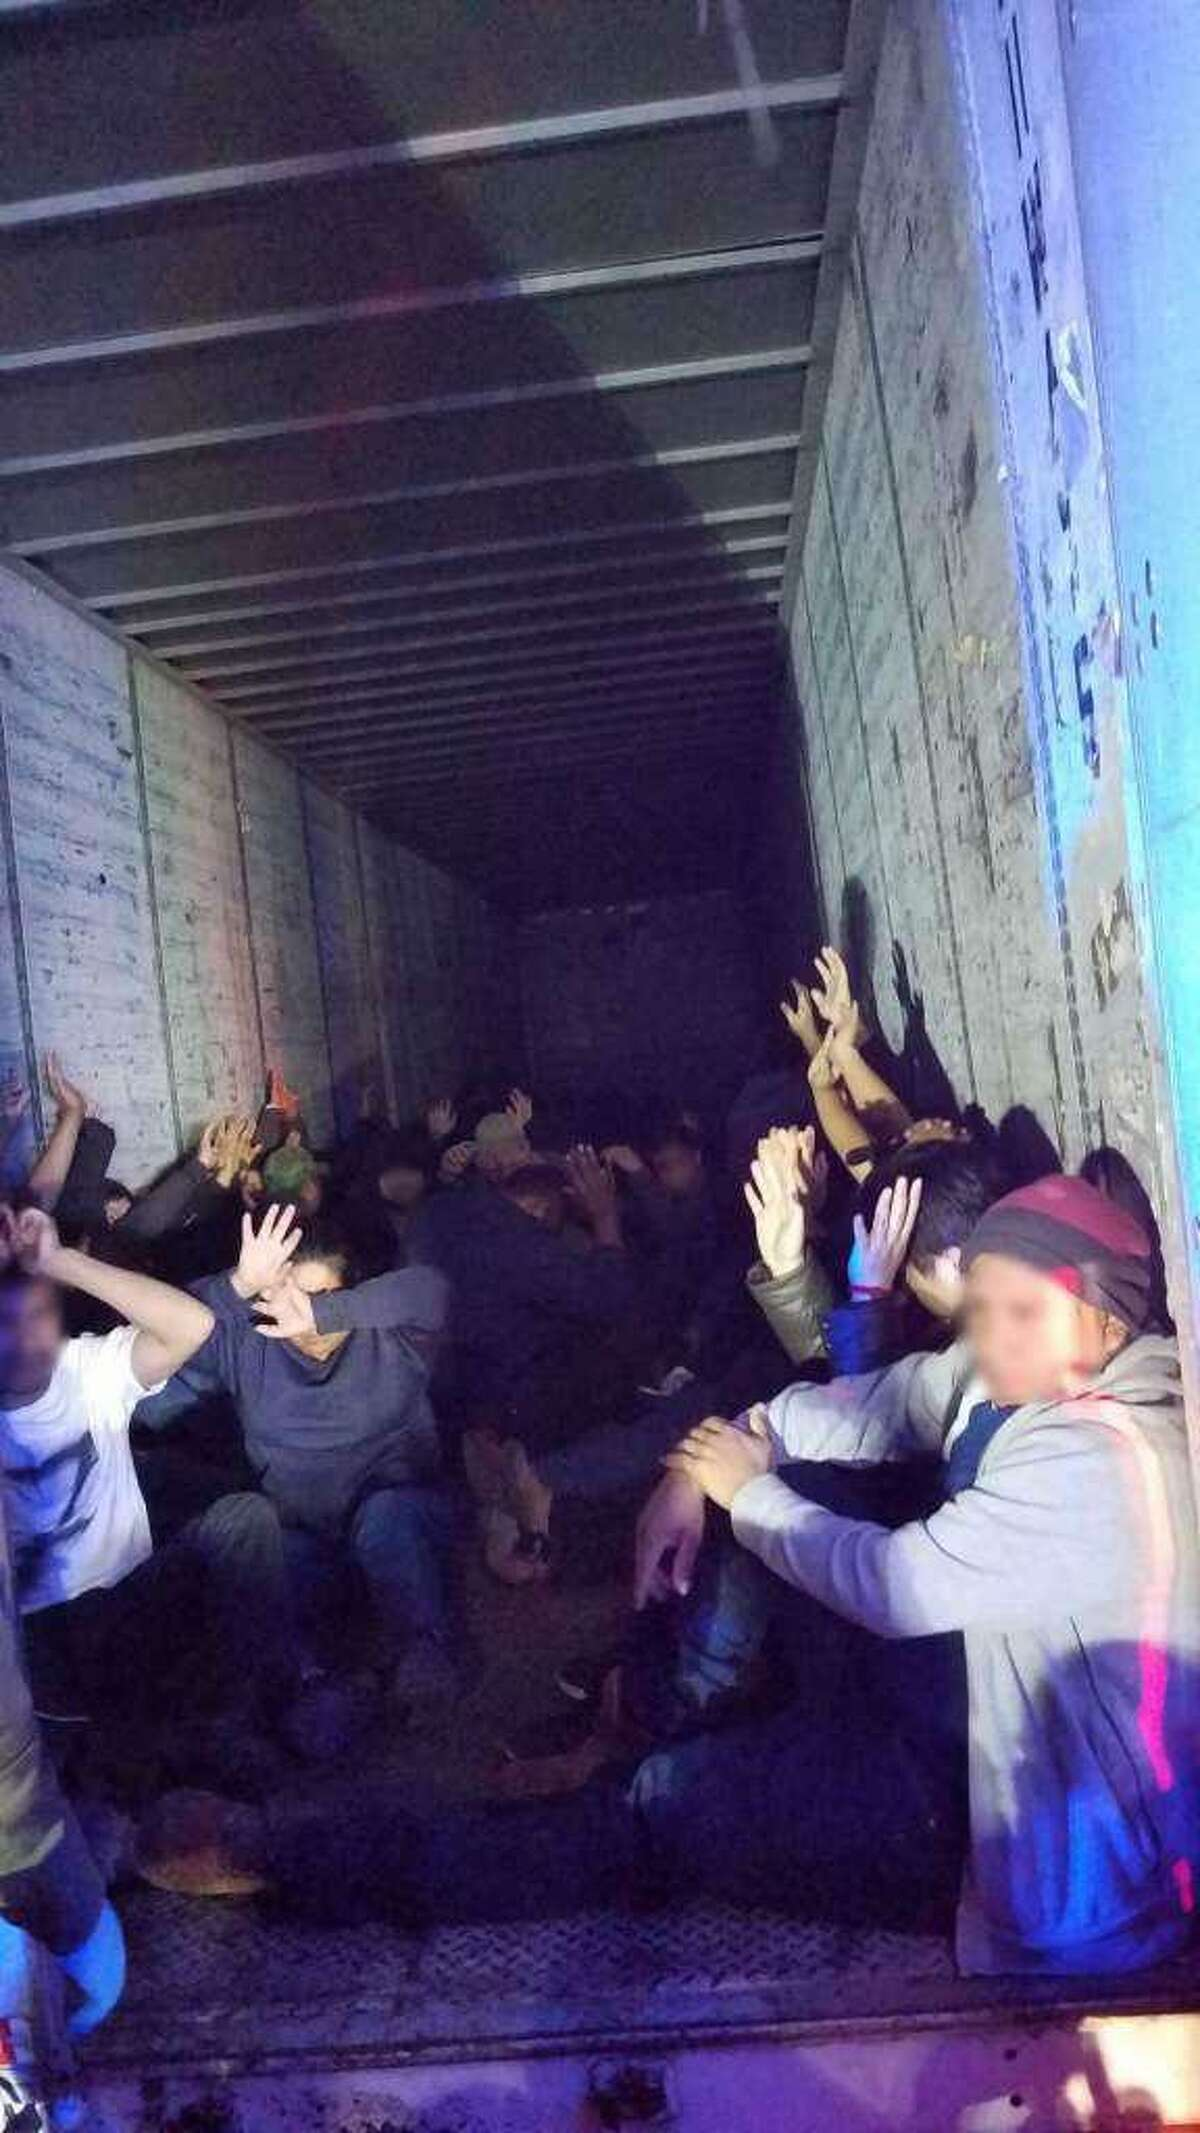 U.S. Border Patrol agents discovered 63 people in the back of a trailer. All were determined to be immigrants who had crossed the border illegally. The truck driver was sentenced to 41 months in prison on Wednesday